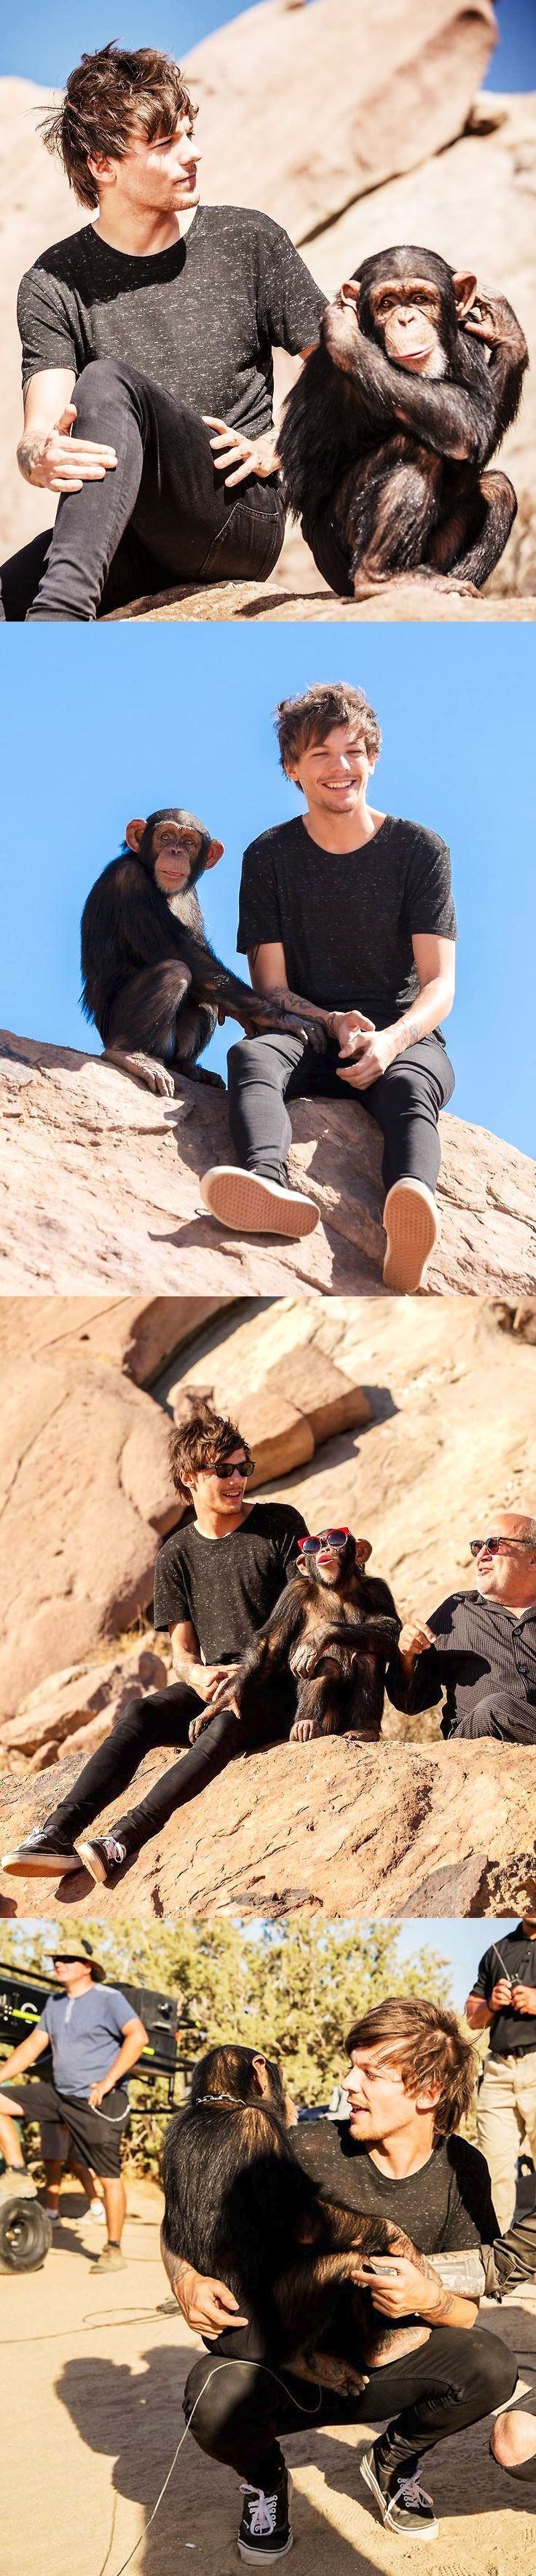 Only a directionit would know what music video this is from-my answer-obviously steal my girl